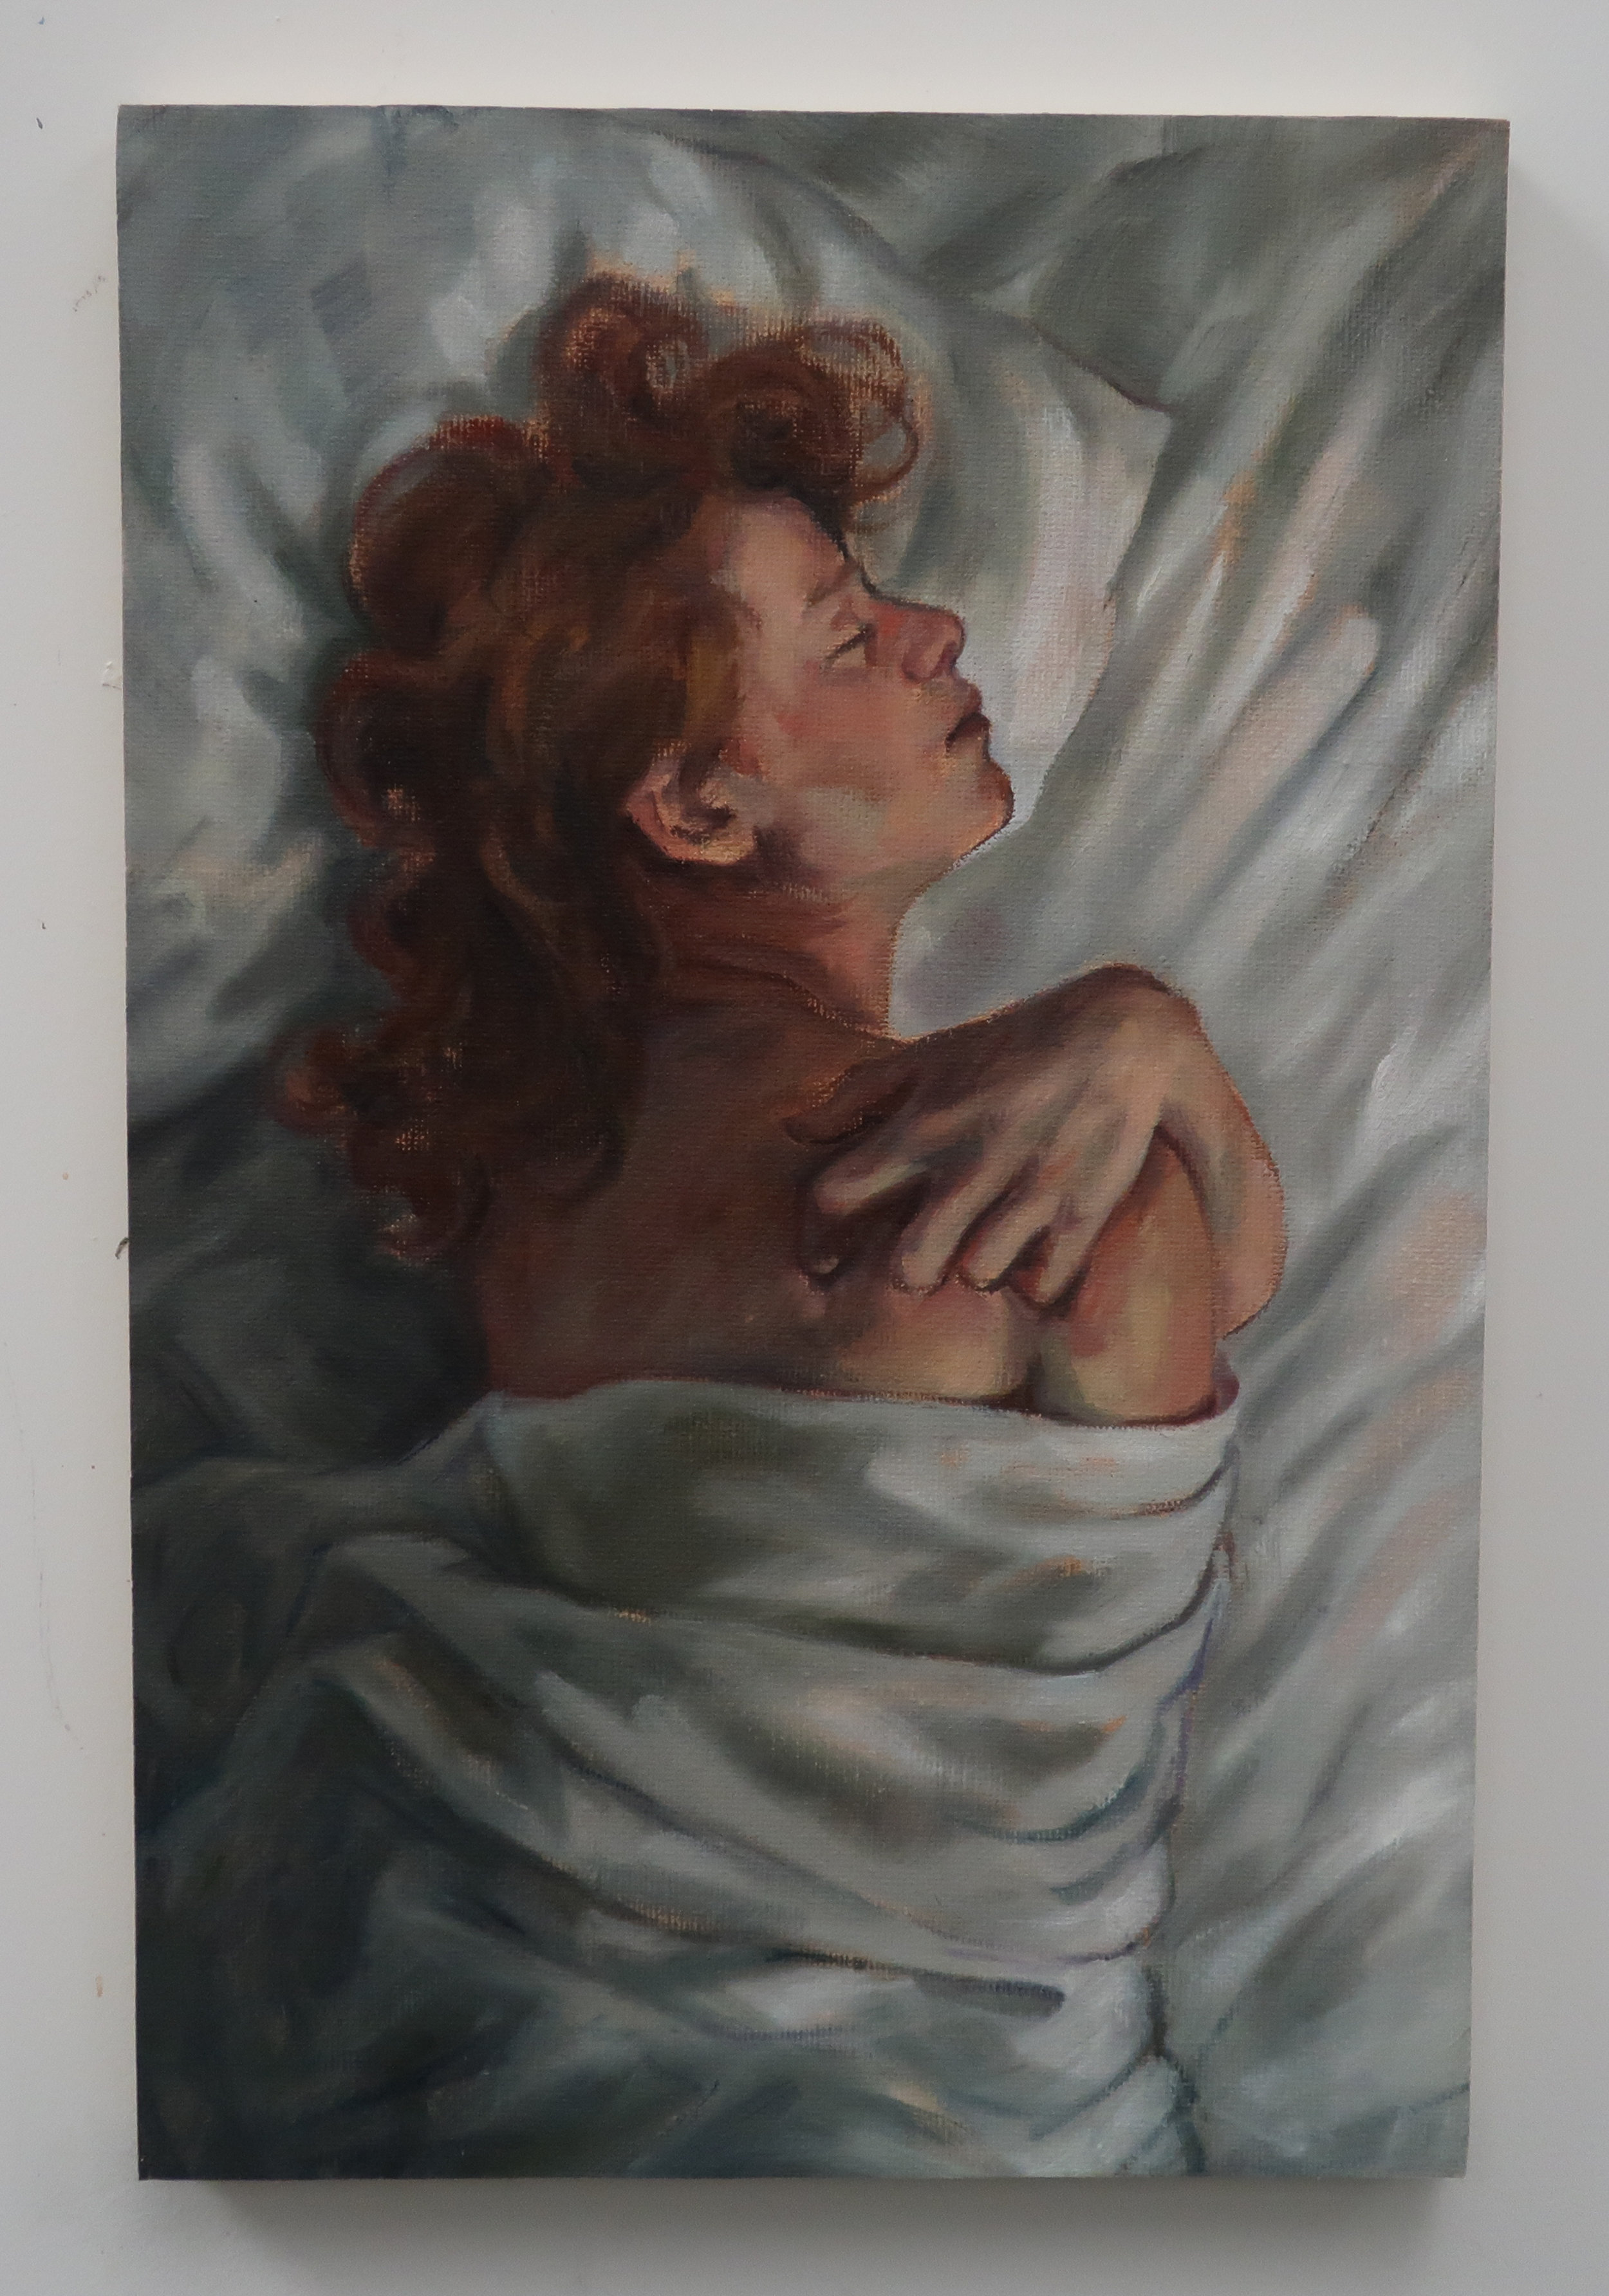 Morning in Bed, 2018, Oil on Canvas, 13x9